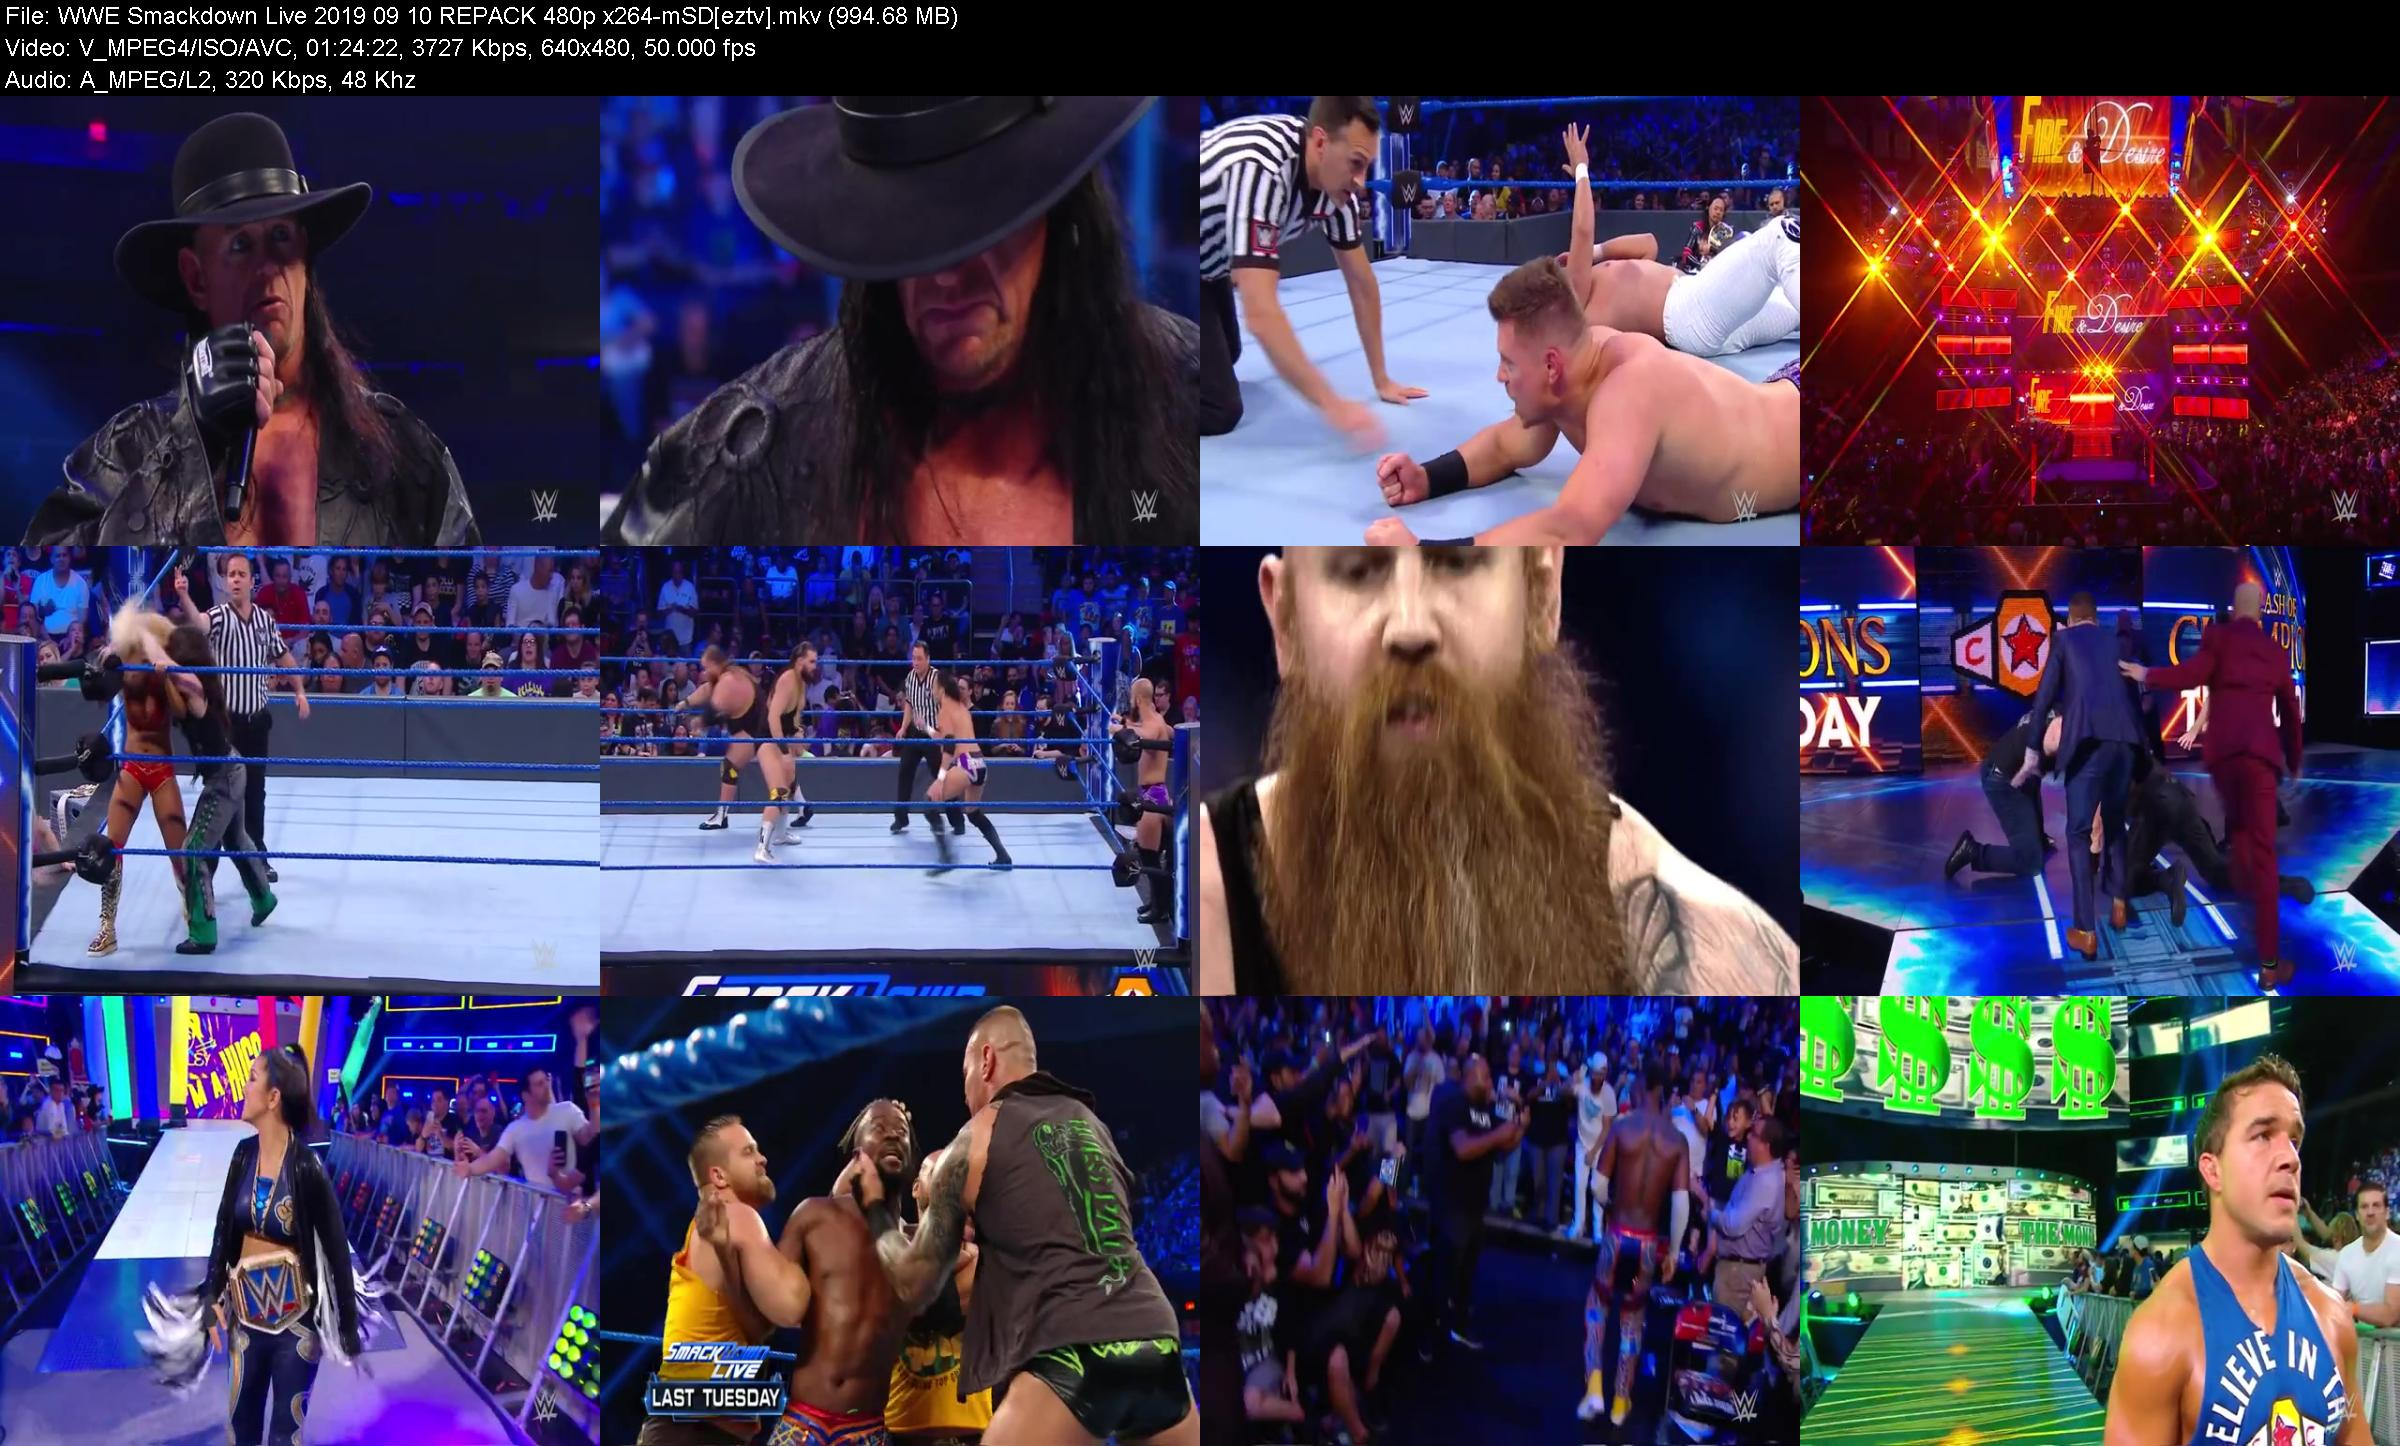 WWE Smackdown Live 2019 09 10 REPACK 480p x264-mSD